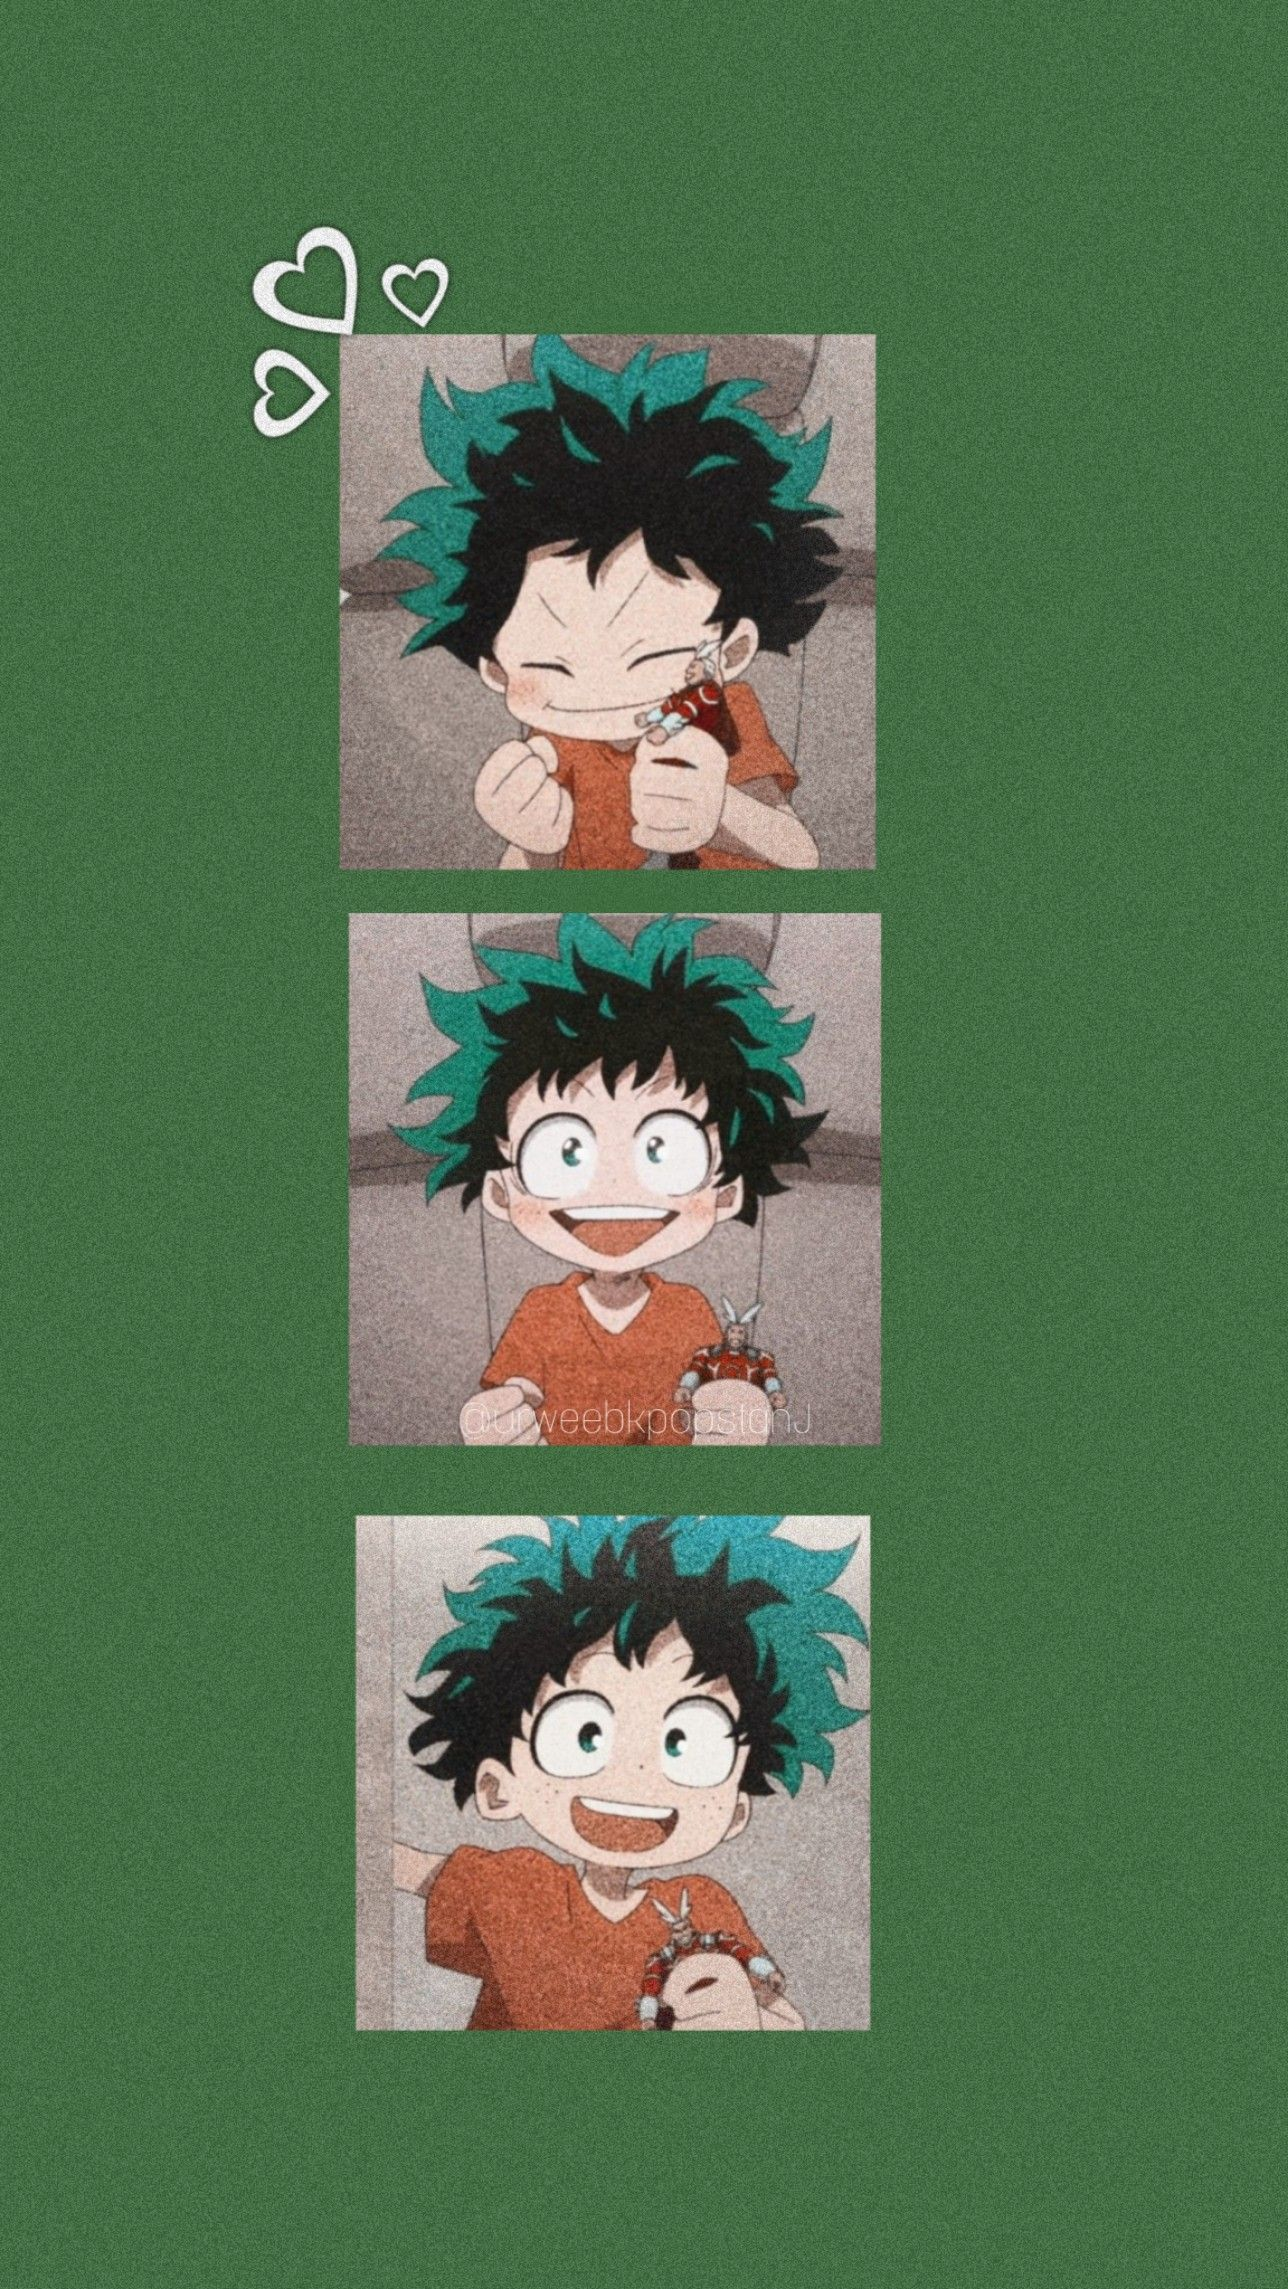 Cute Deku Wallpaper Hero Wallpaper Anime Wallpaper Cute Anime Wallpaper